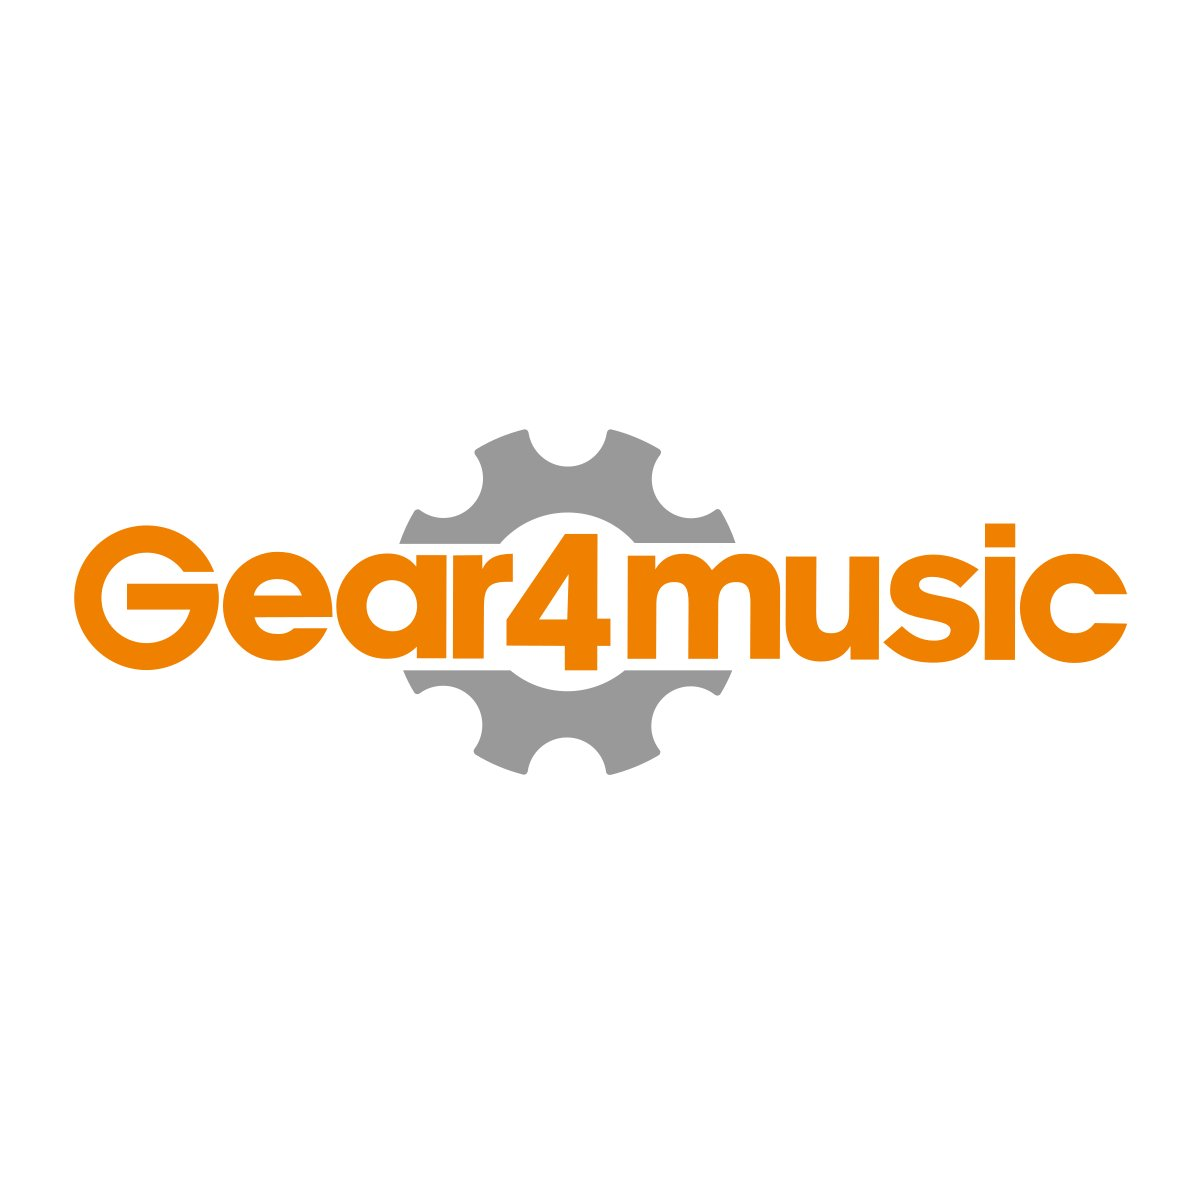 Support de Clavier en X par Gear4music